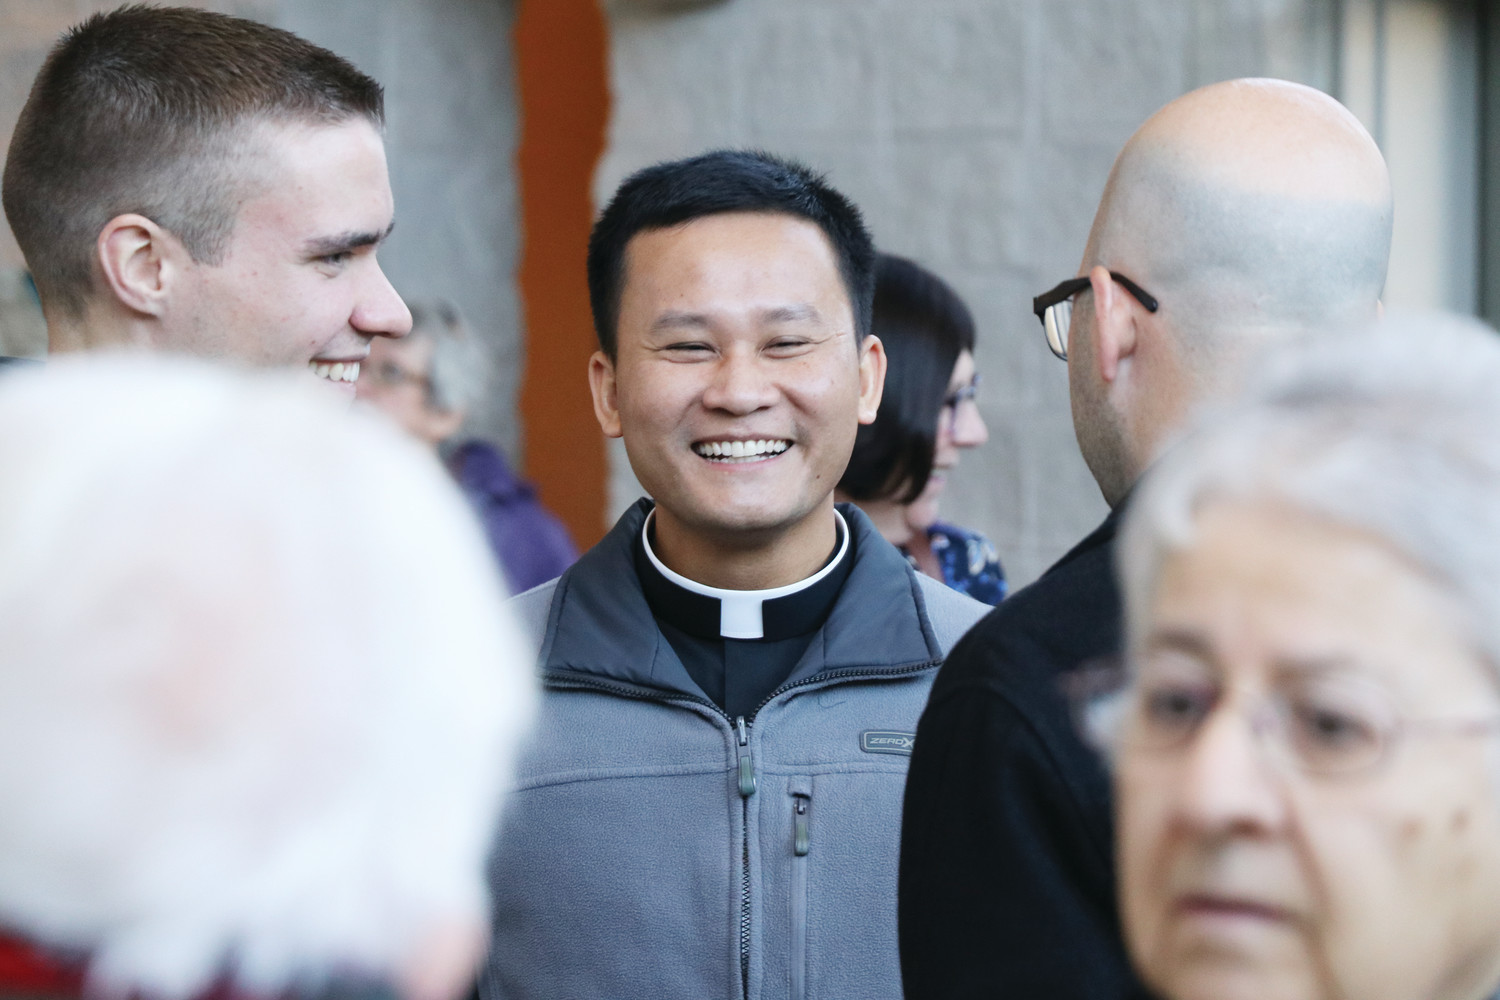 Second Theology Seminarian Hiep Nguyen enjoys fellowship with fellow seminarians before a noon Mass in the La Salette Chapel.